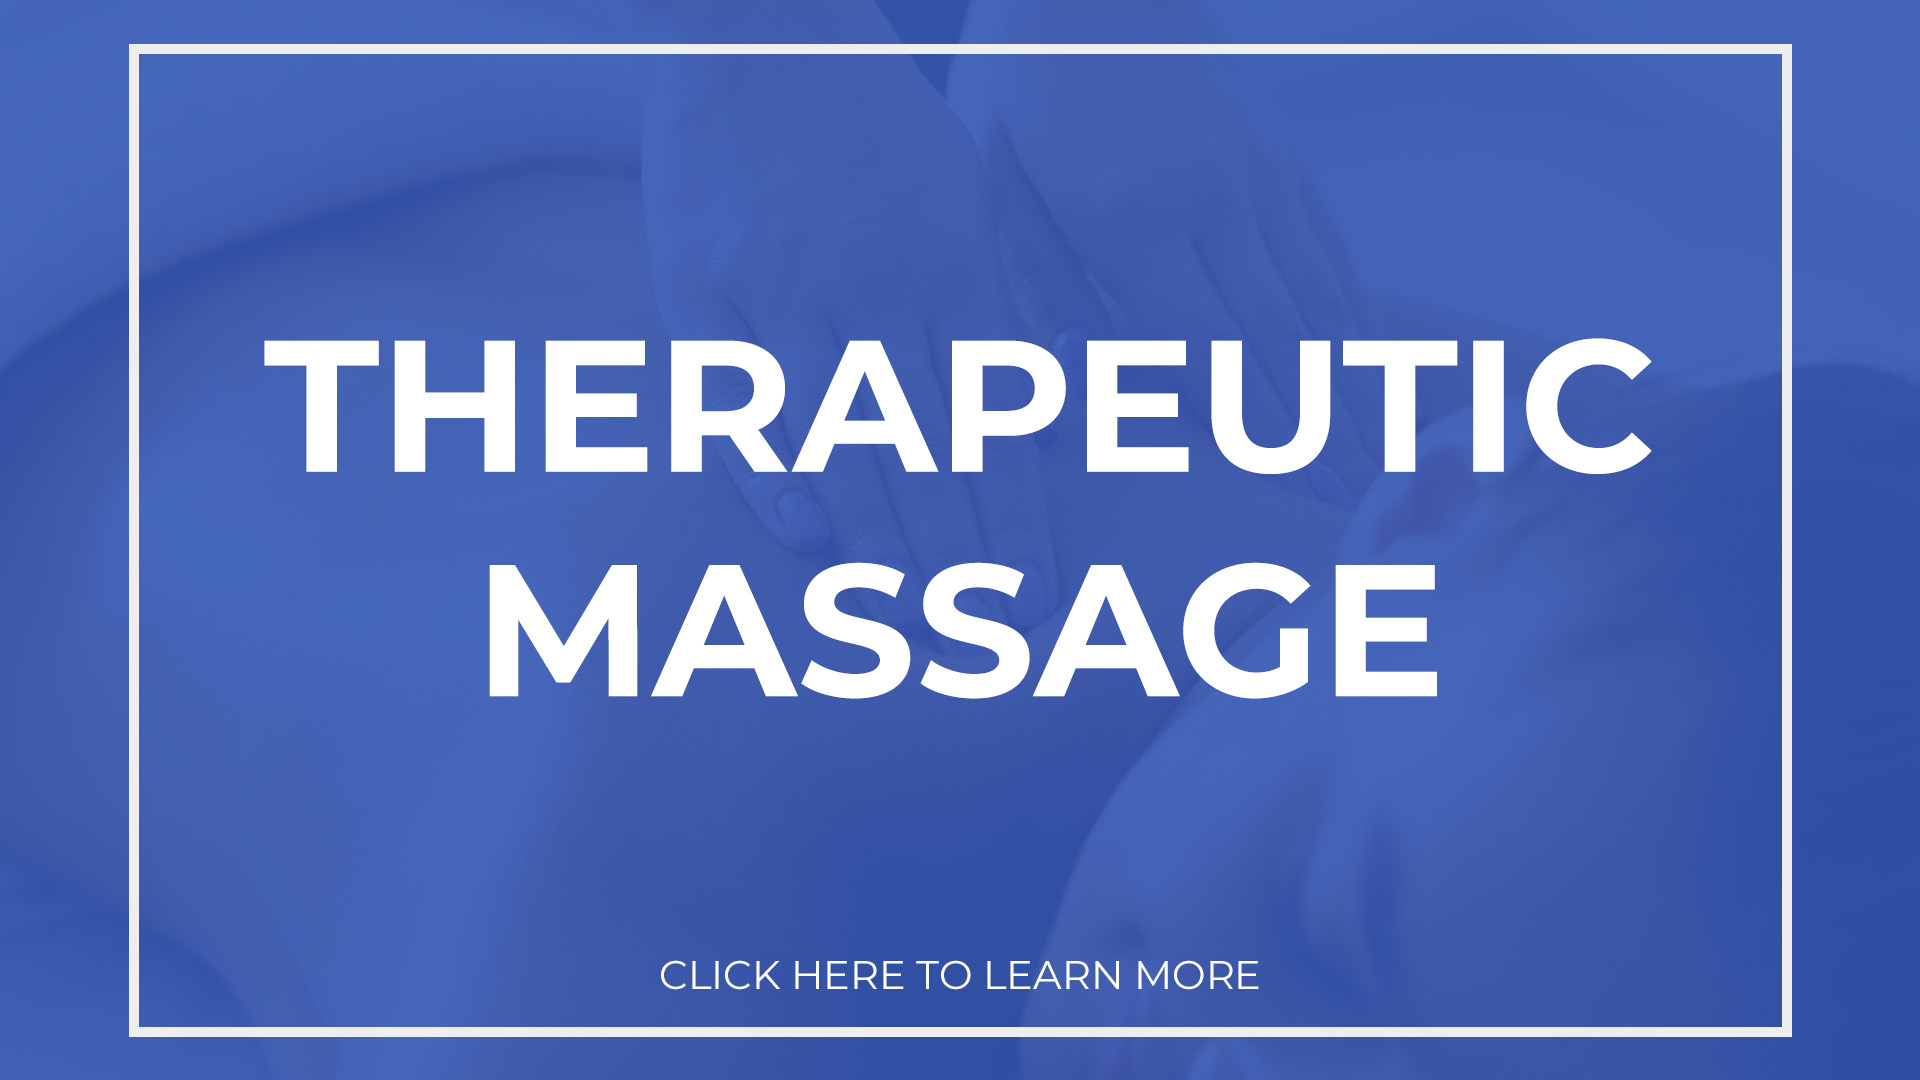 Therapeutic Massage. Click here to learn more.